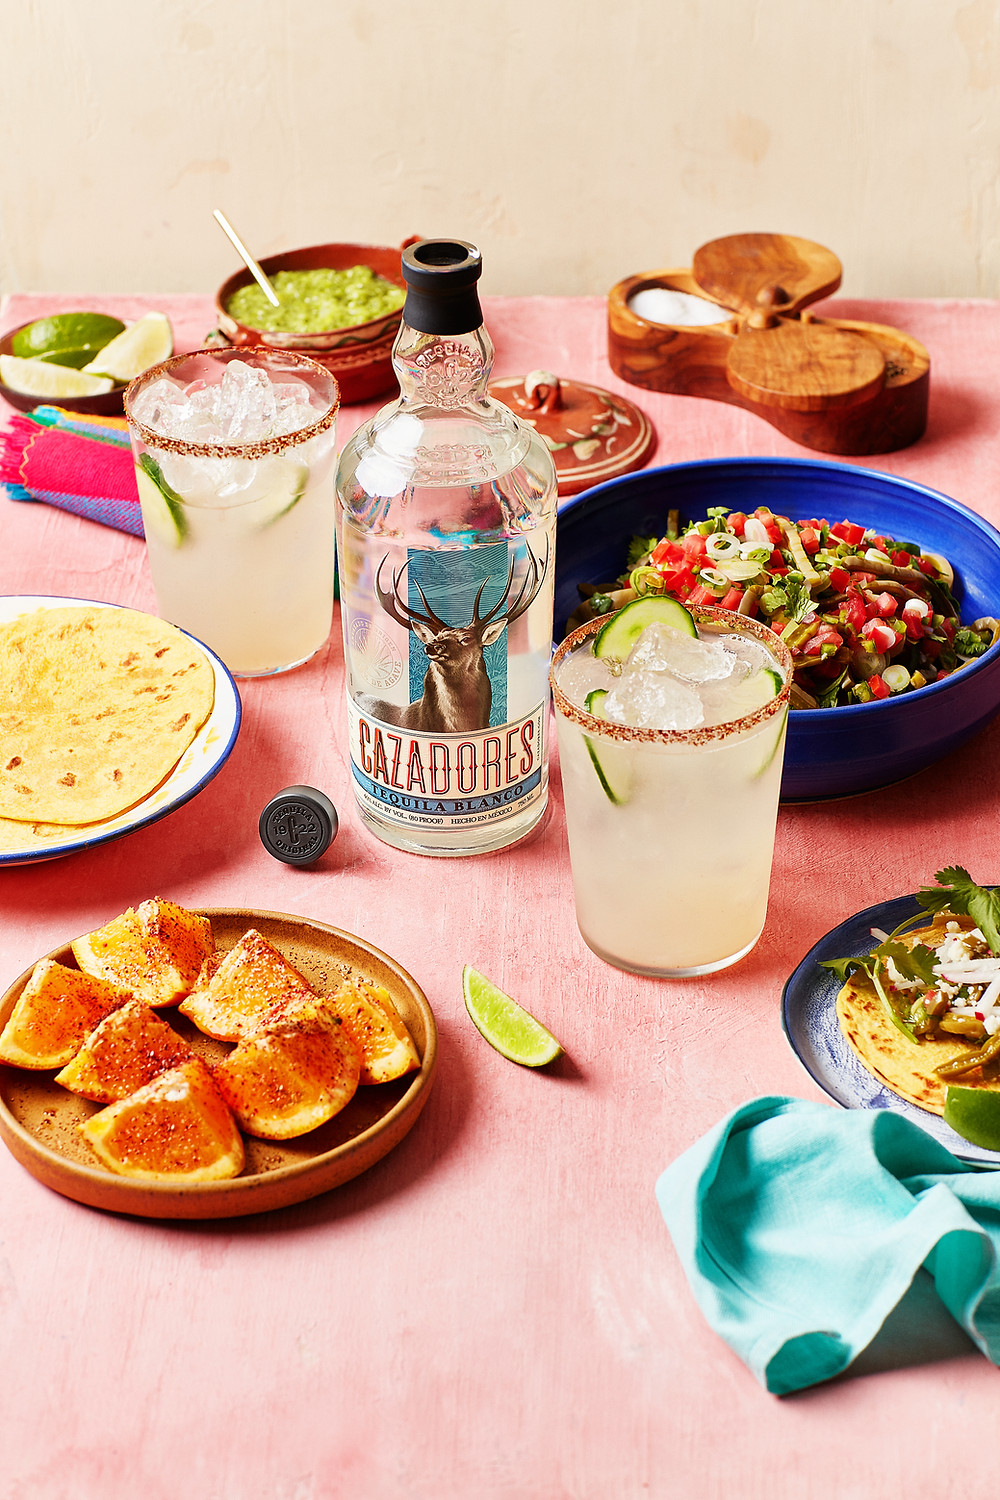 Nopales Tacos and Tequila Cazadores Hermosa Paloma